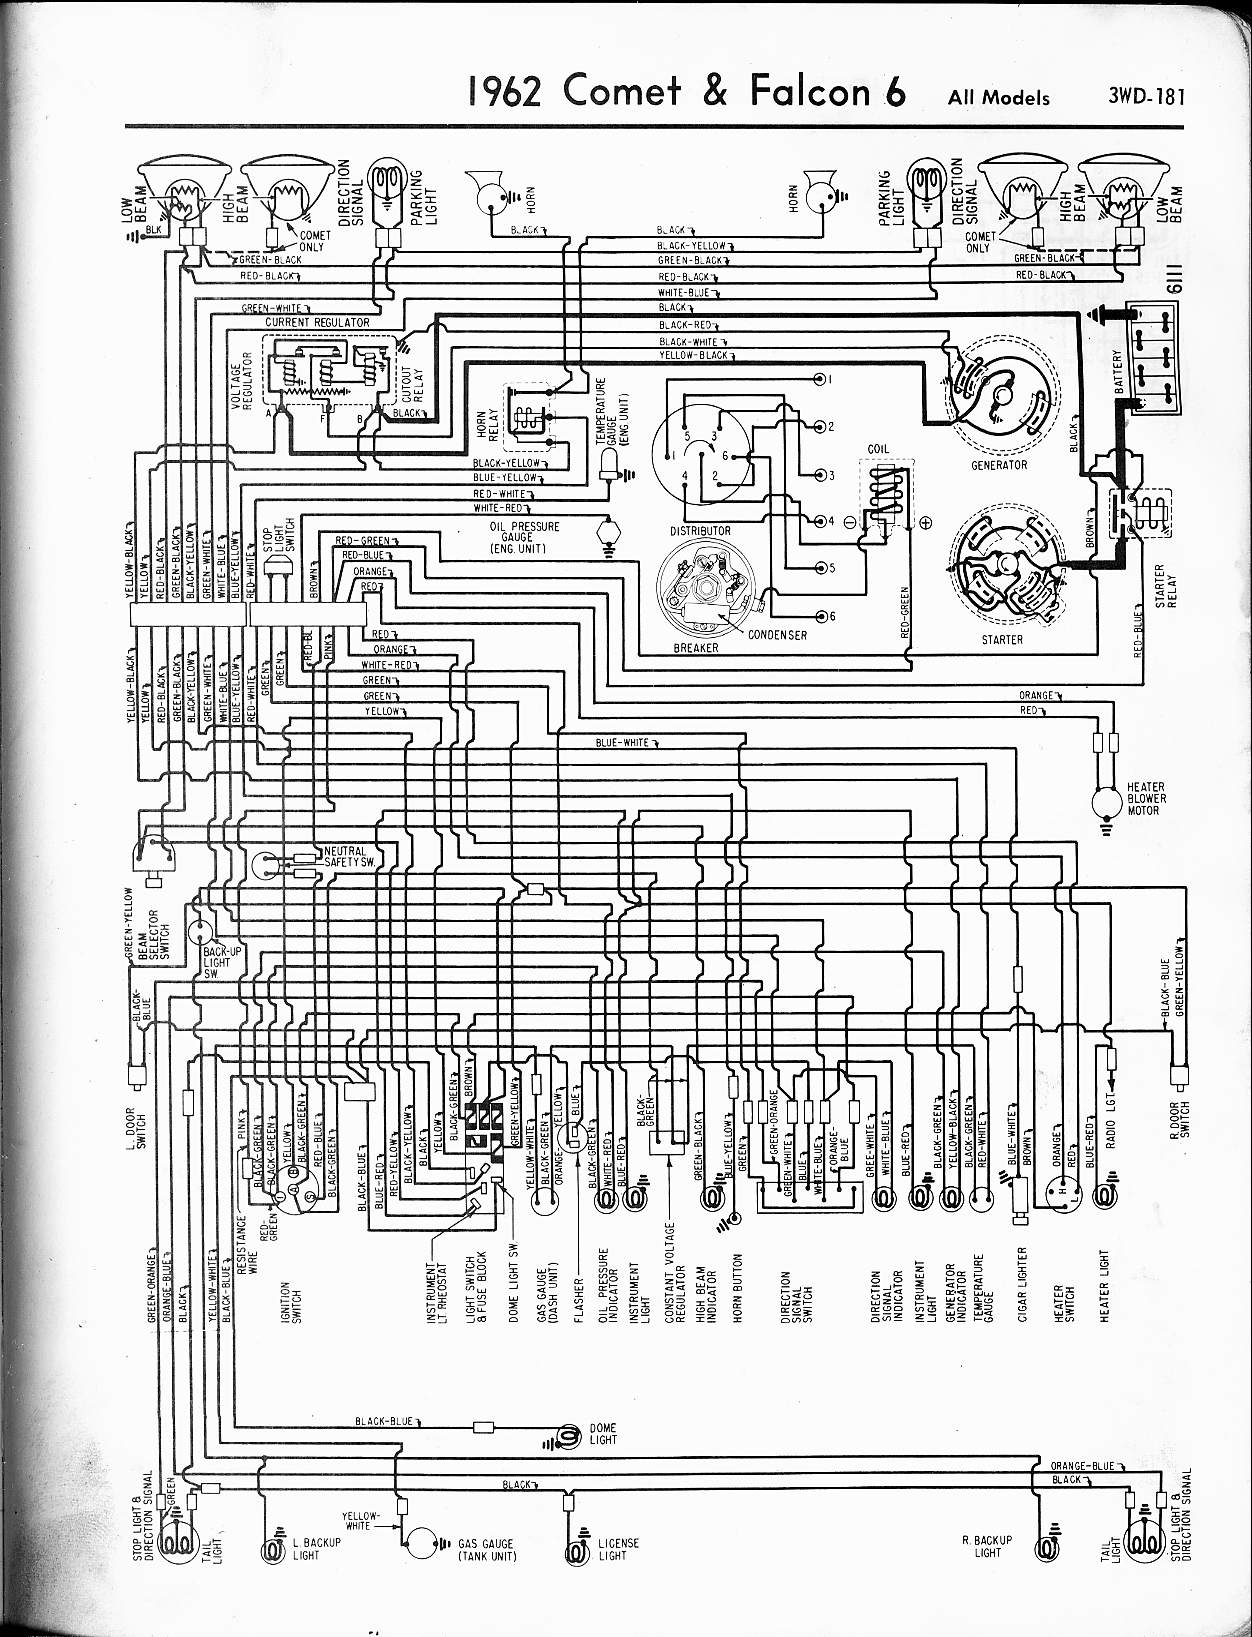 [DIAGRAM_0HG]  4A7 Ford Xr6 Fuse Box Diagram | Wiring Resources | 1999 Ford Au Fuse Box Diagram |  | Wiring Resources